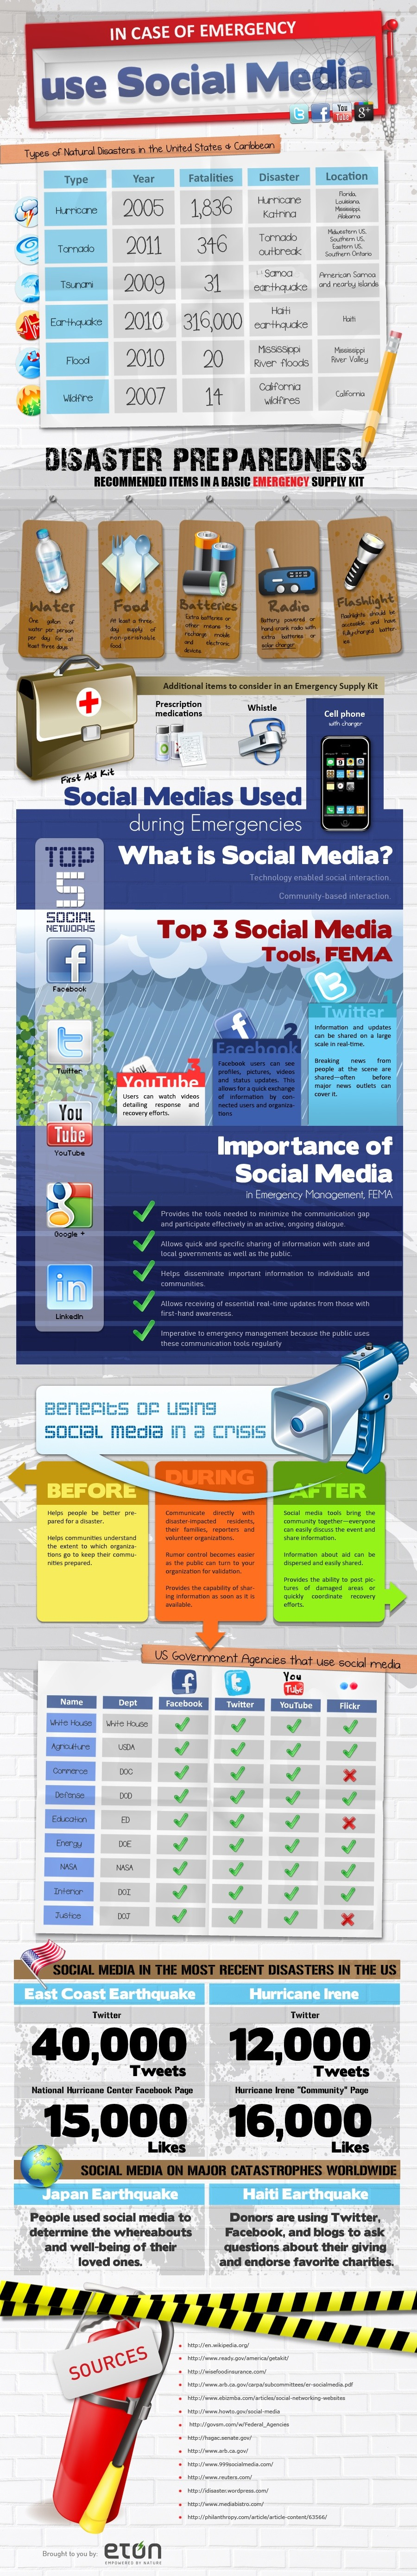 Infographic - In Case of Emergency Use Social Media